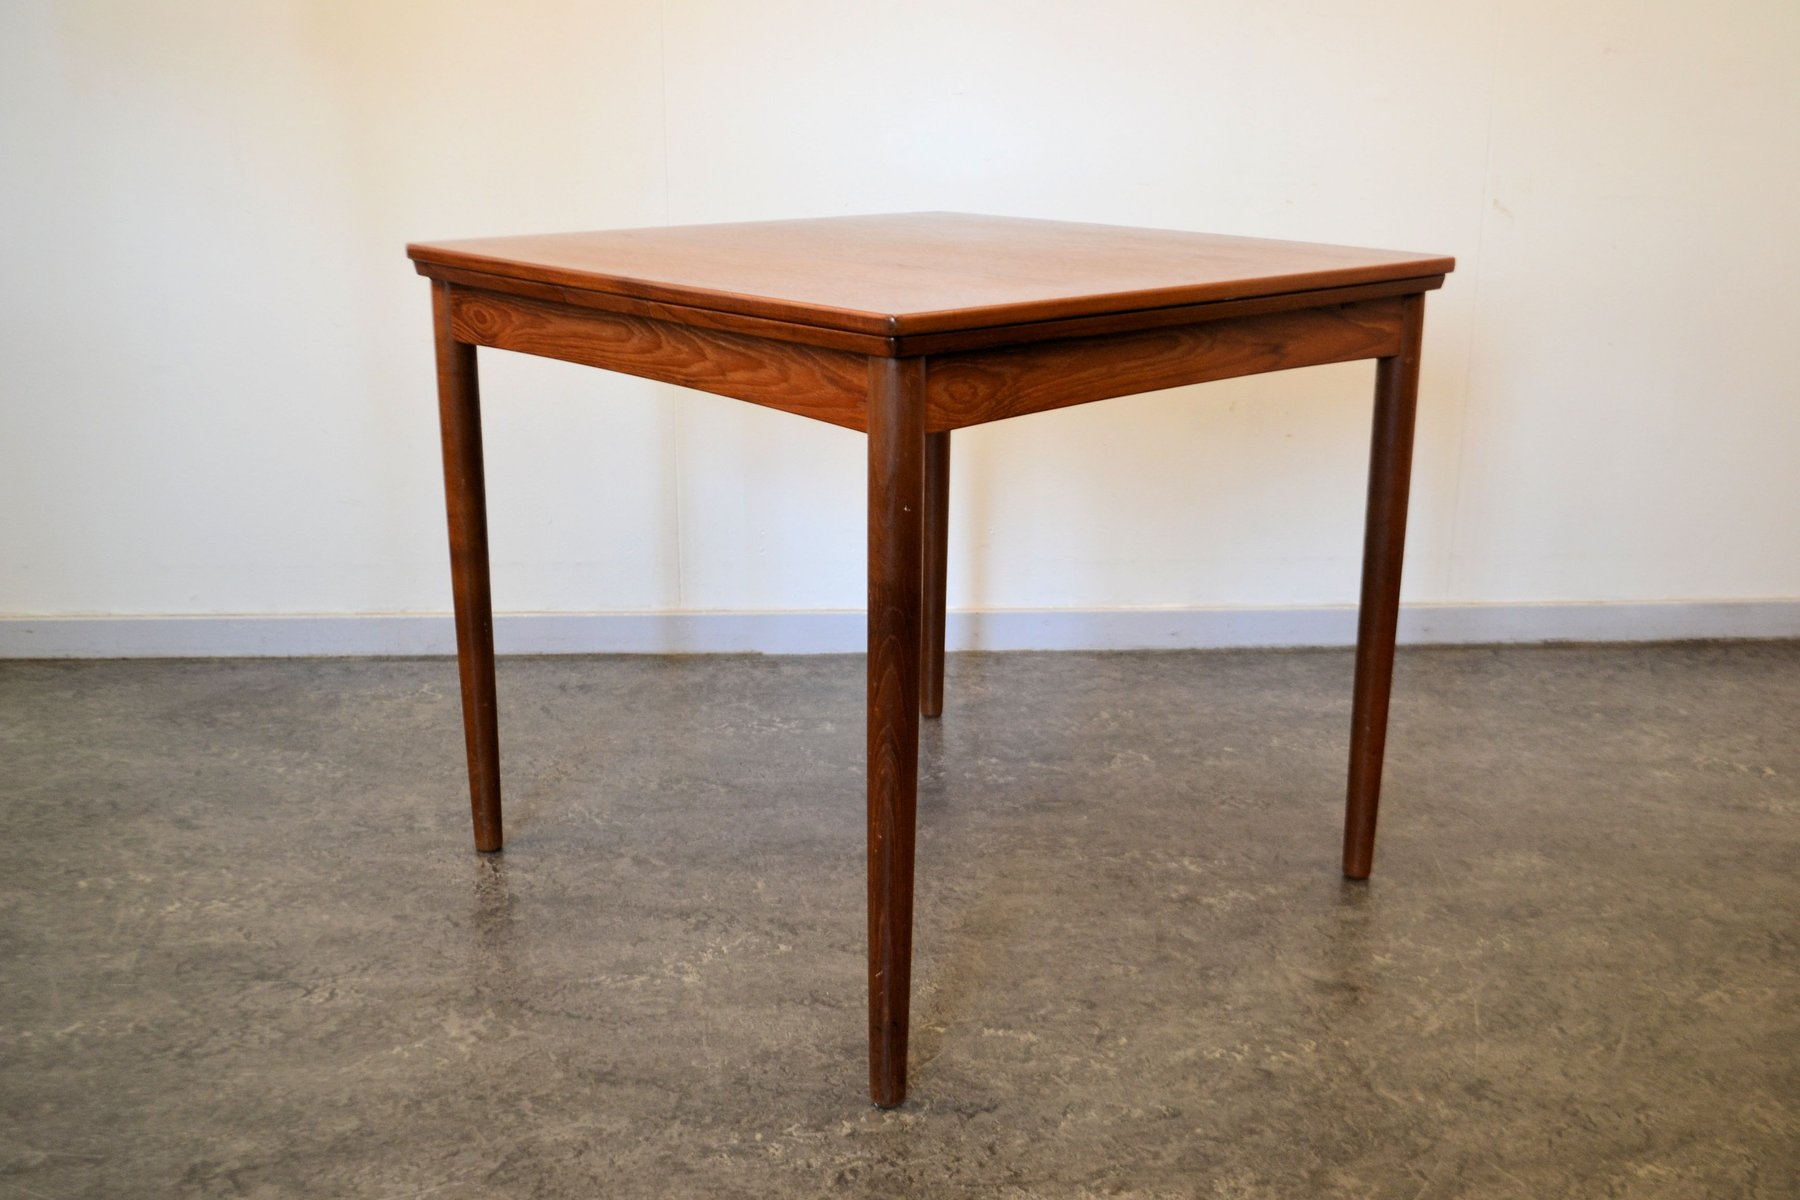 Exceptional Vintage Danish Extendable Teak Dining Table By Poul Hundevad